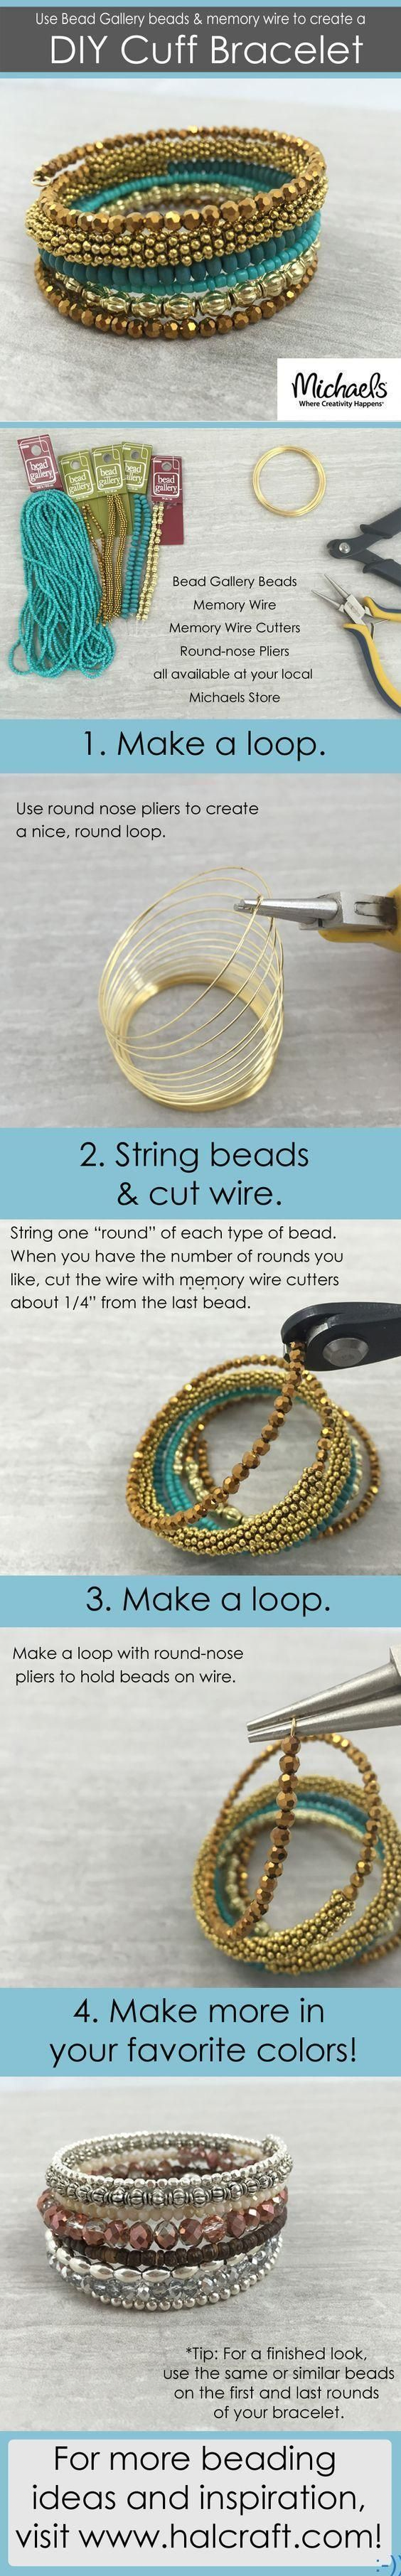 rockinbeads matubo com tila michaels ideas beading you bracelet using a tube beads loom